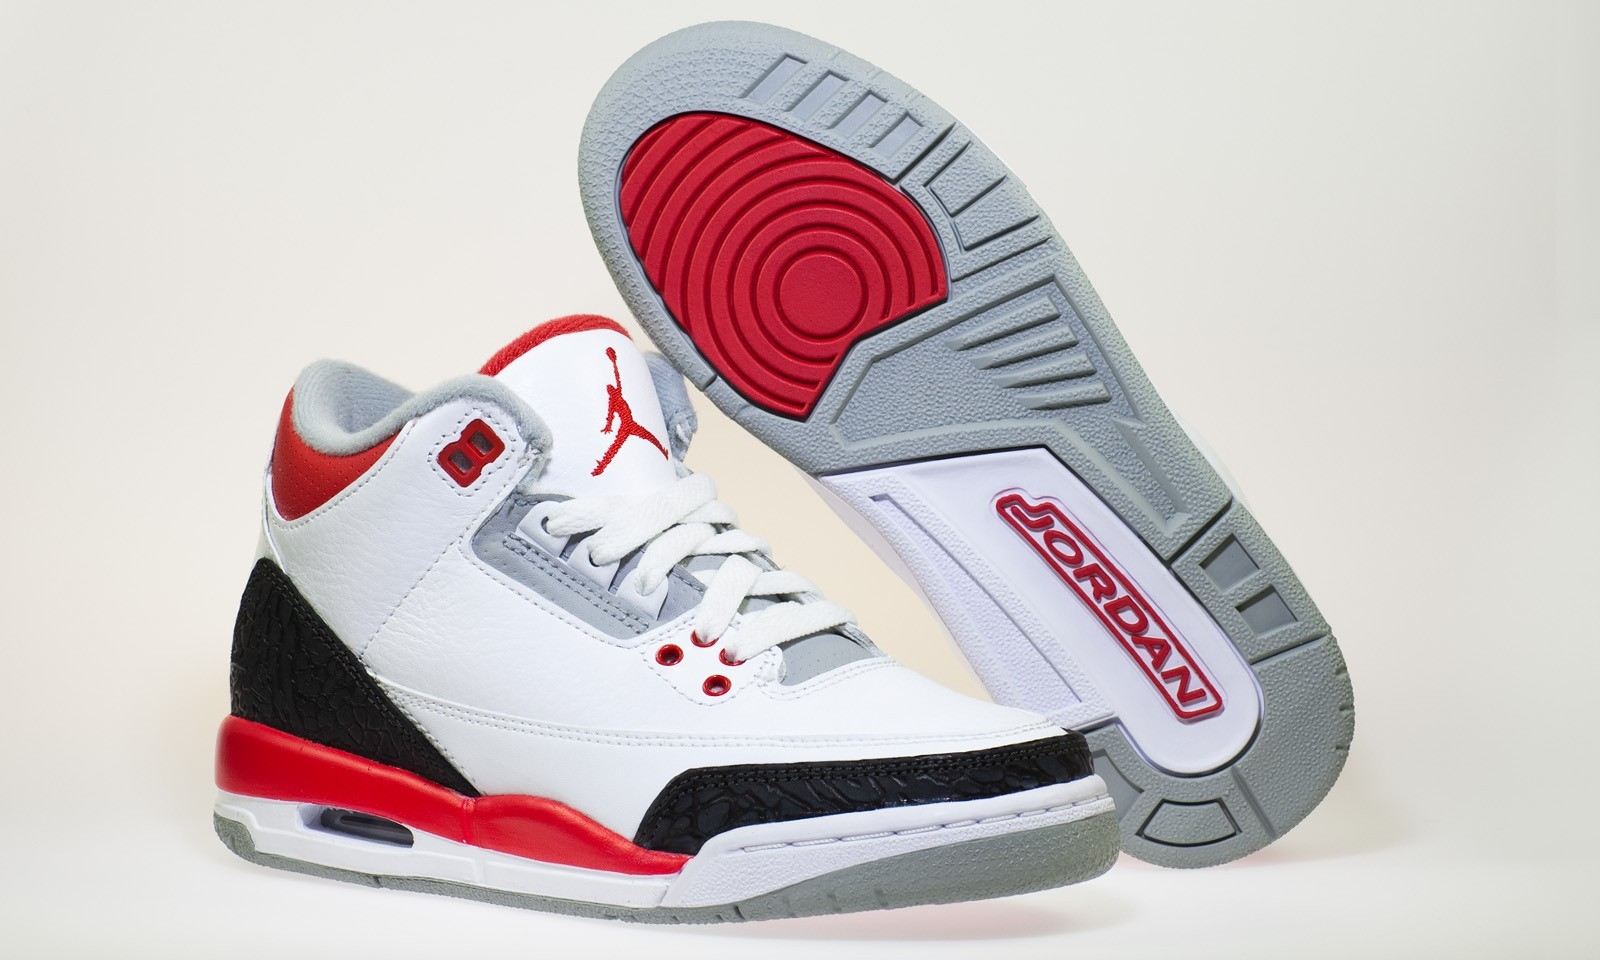 cheap for discount fa010 25bd7 Air Jordan Retro 3(III) White Fire Red Neutral Grey Black 398614-120